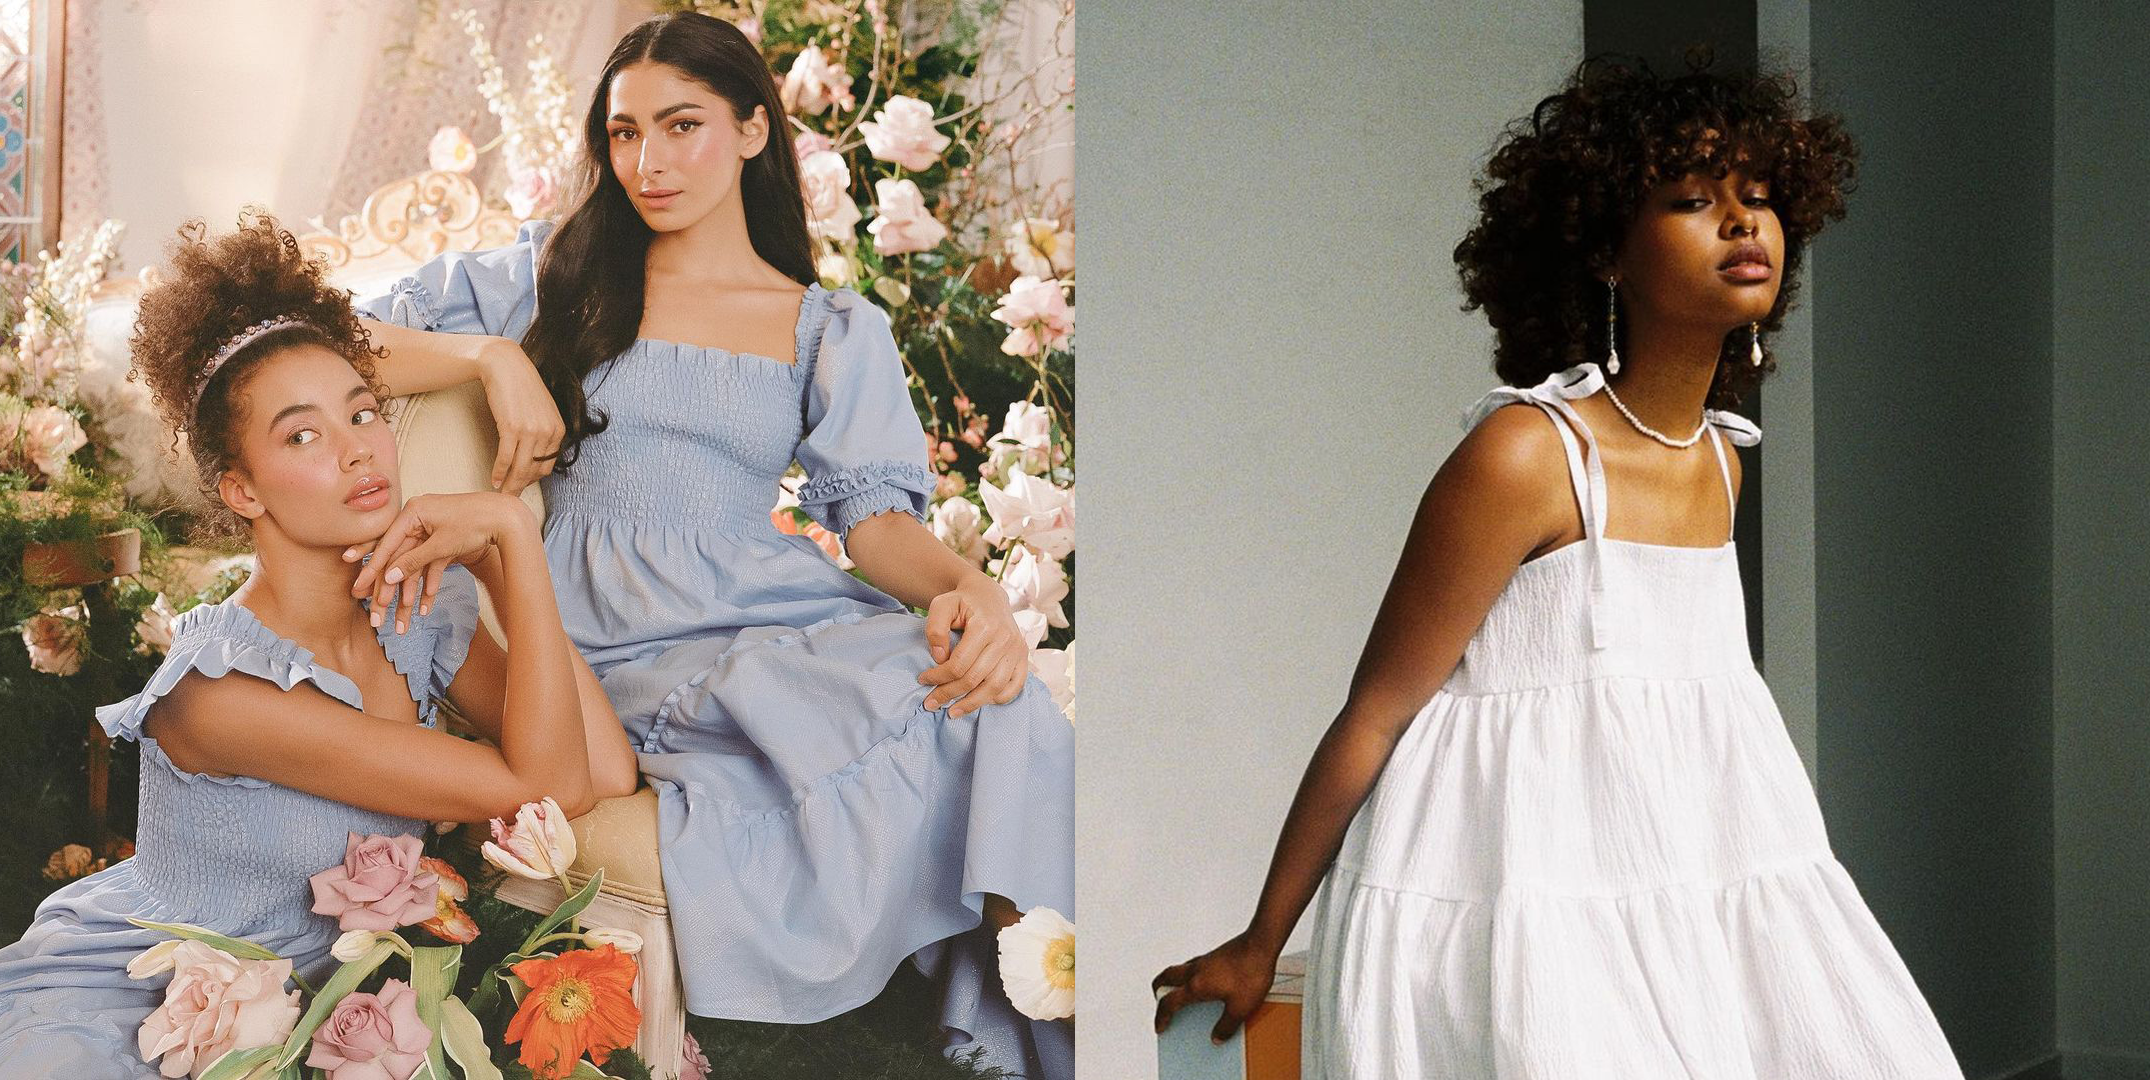 15 Cottagecore Fashion Brands to Get in on Those Pastoral Vibes